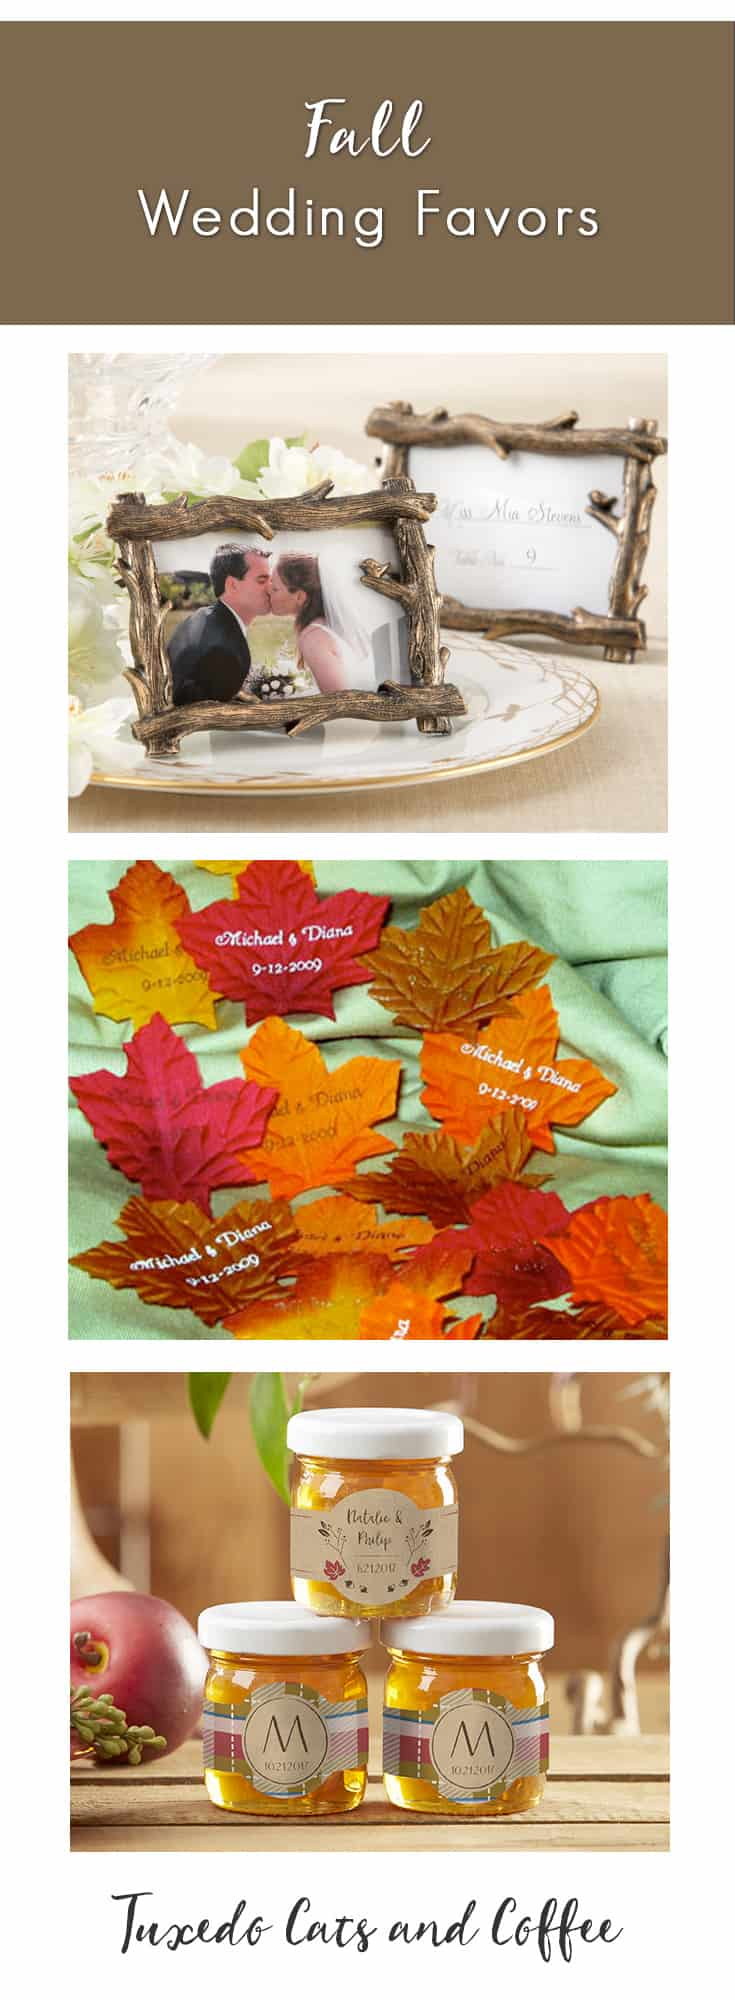 Celebrate your fall wedding with beautiful, rustic and fall wedding favors. We have everything from maple syrup in leaf-shaped bottles to pinecones and red, orange, and yellow fall colors and more. You can even customize your autumn wedding favors with a couple's monogram or your names. We have plenty of affordable favors for any fall themed wedding reception.